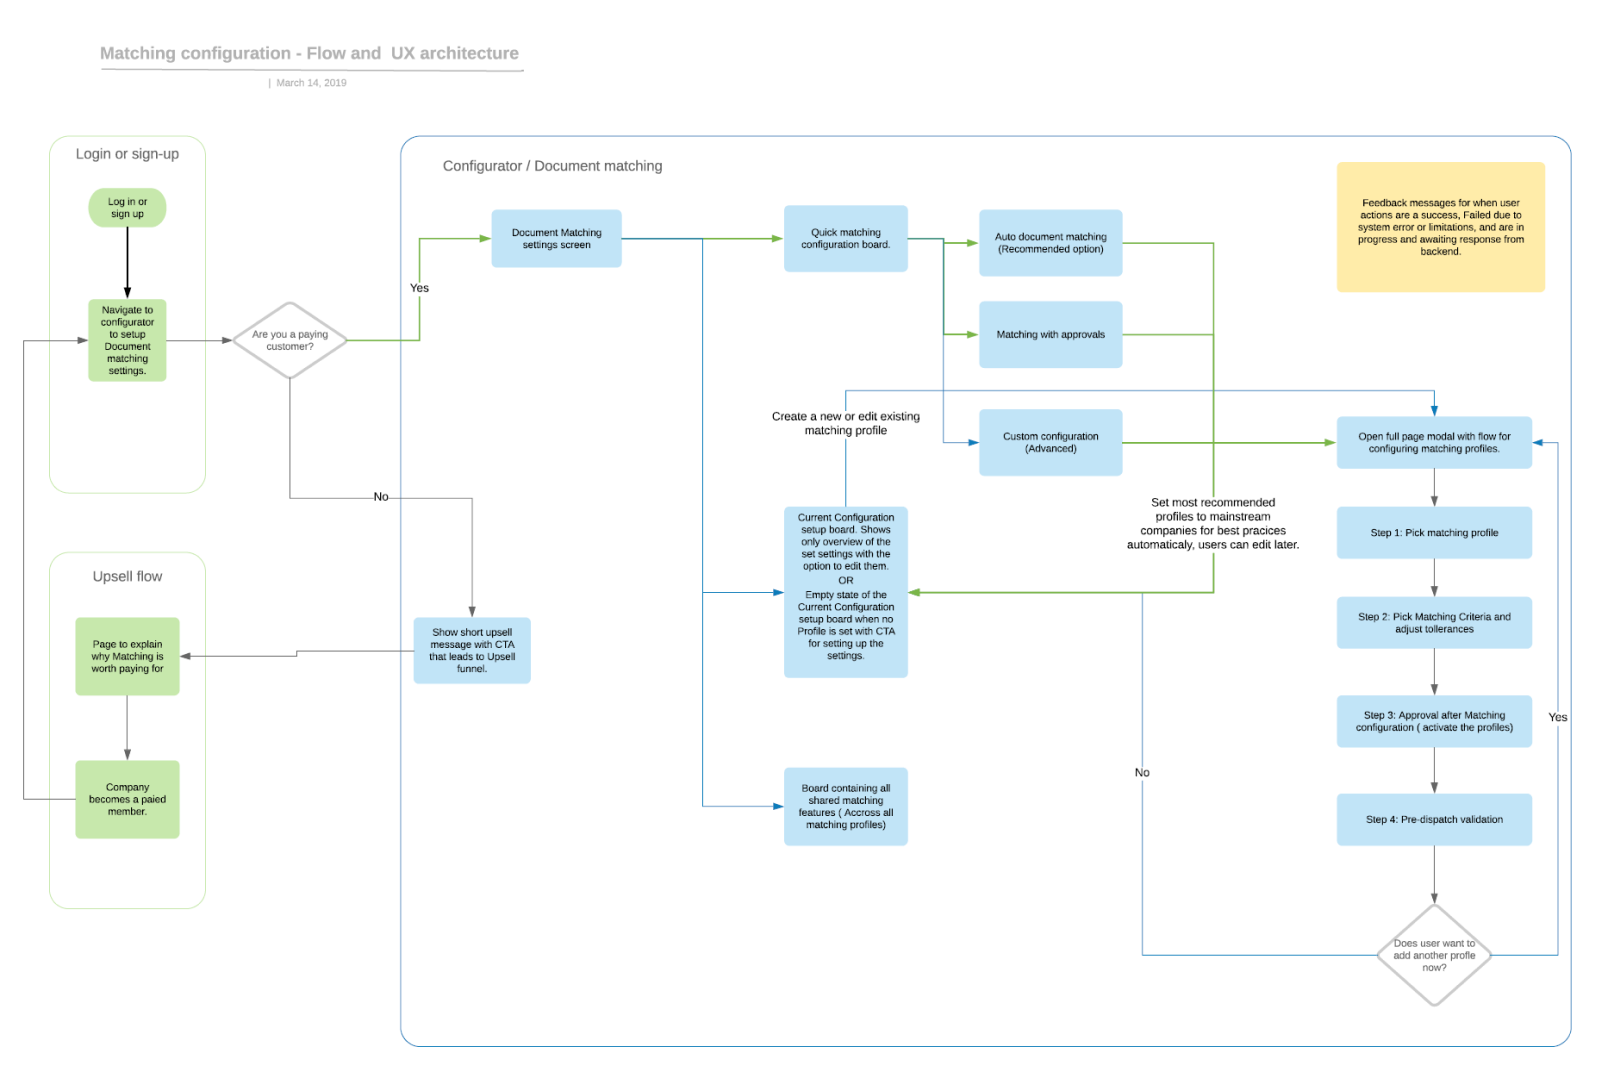 Flowchart for Matching configuration